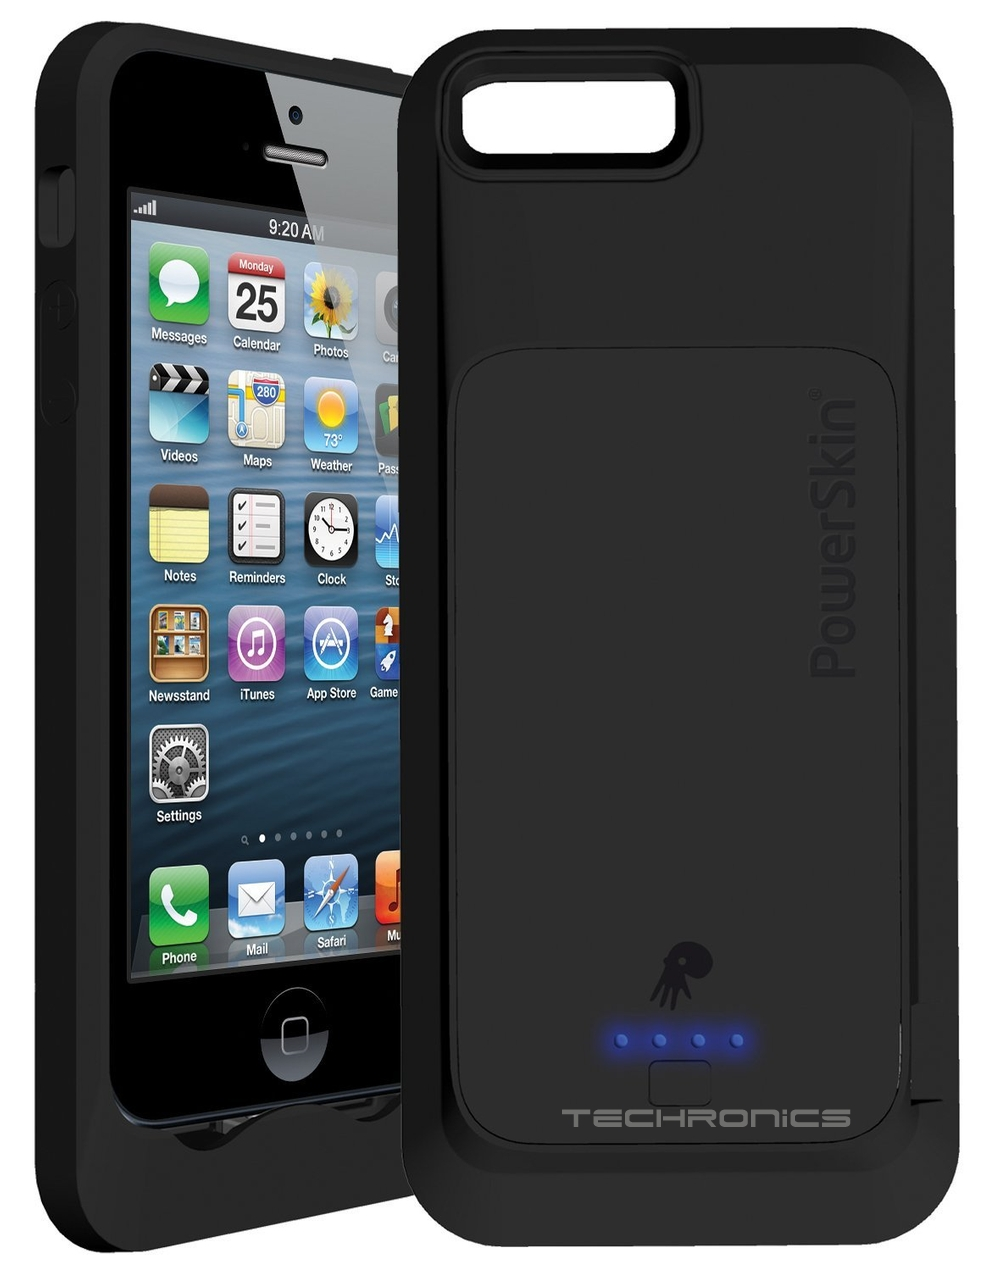 rechargeable iphone 5s case apple certified powerskin black 1500mah battery 1480